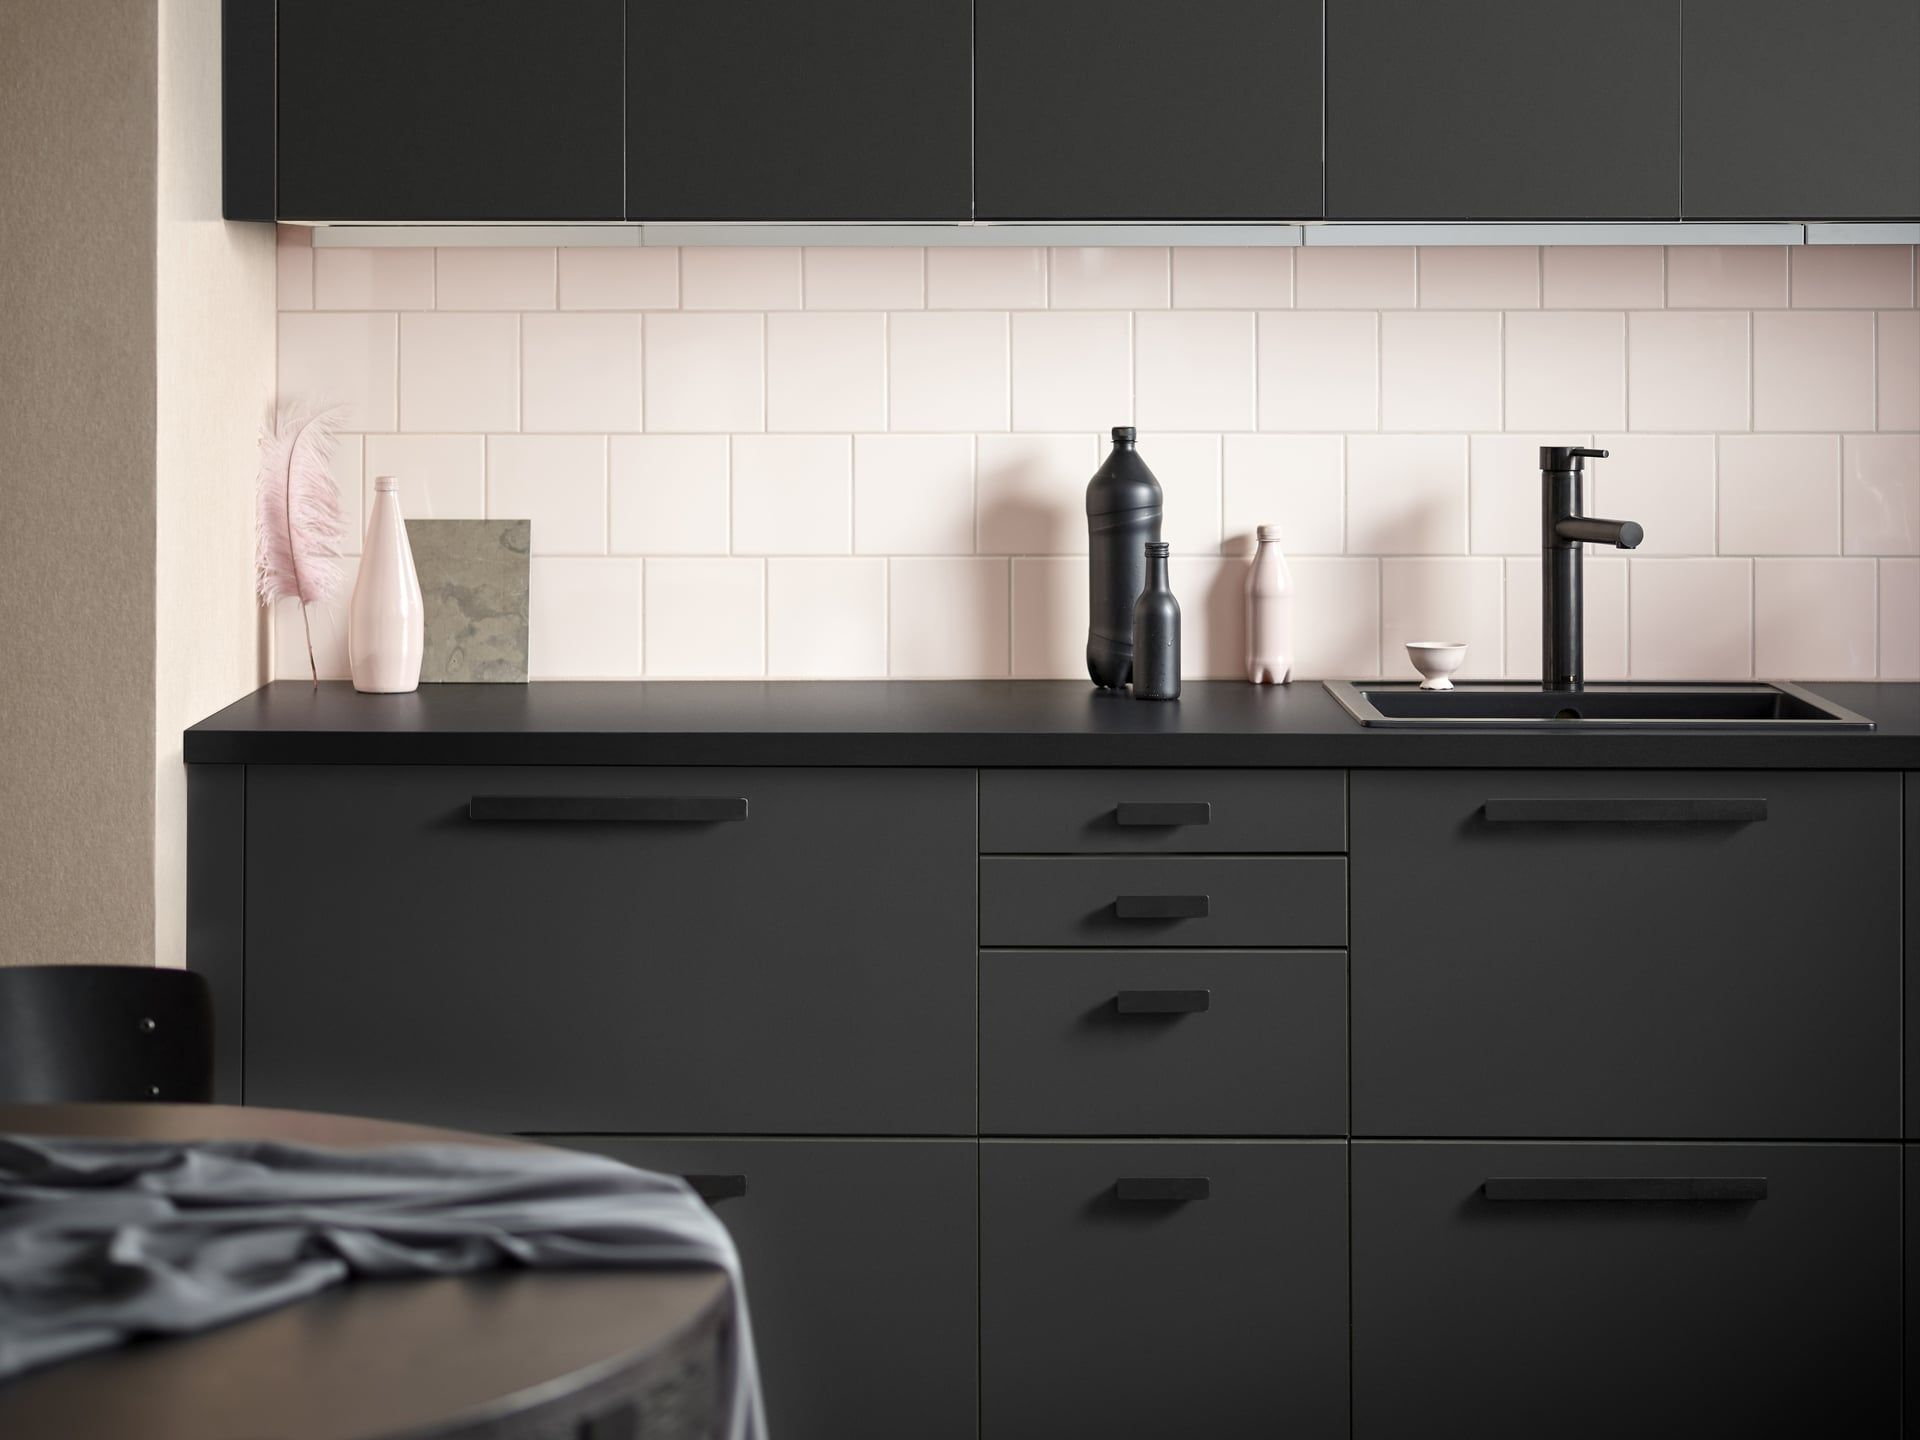 Ikea Just Released the Sleekest Kitchen Cabinets, All Made From Recycled Materials - Sleek kitchen cabinets, Recycled kitchen, Ikea kitchen units, Sleek kitchen, Kitchen design trends, Ikea kitchen - KUNGSBACKA Kitchen Cabinet Fronts